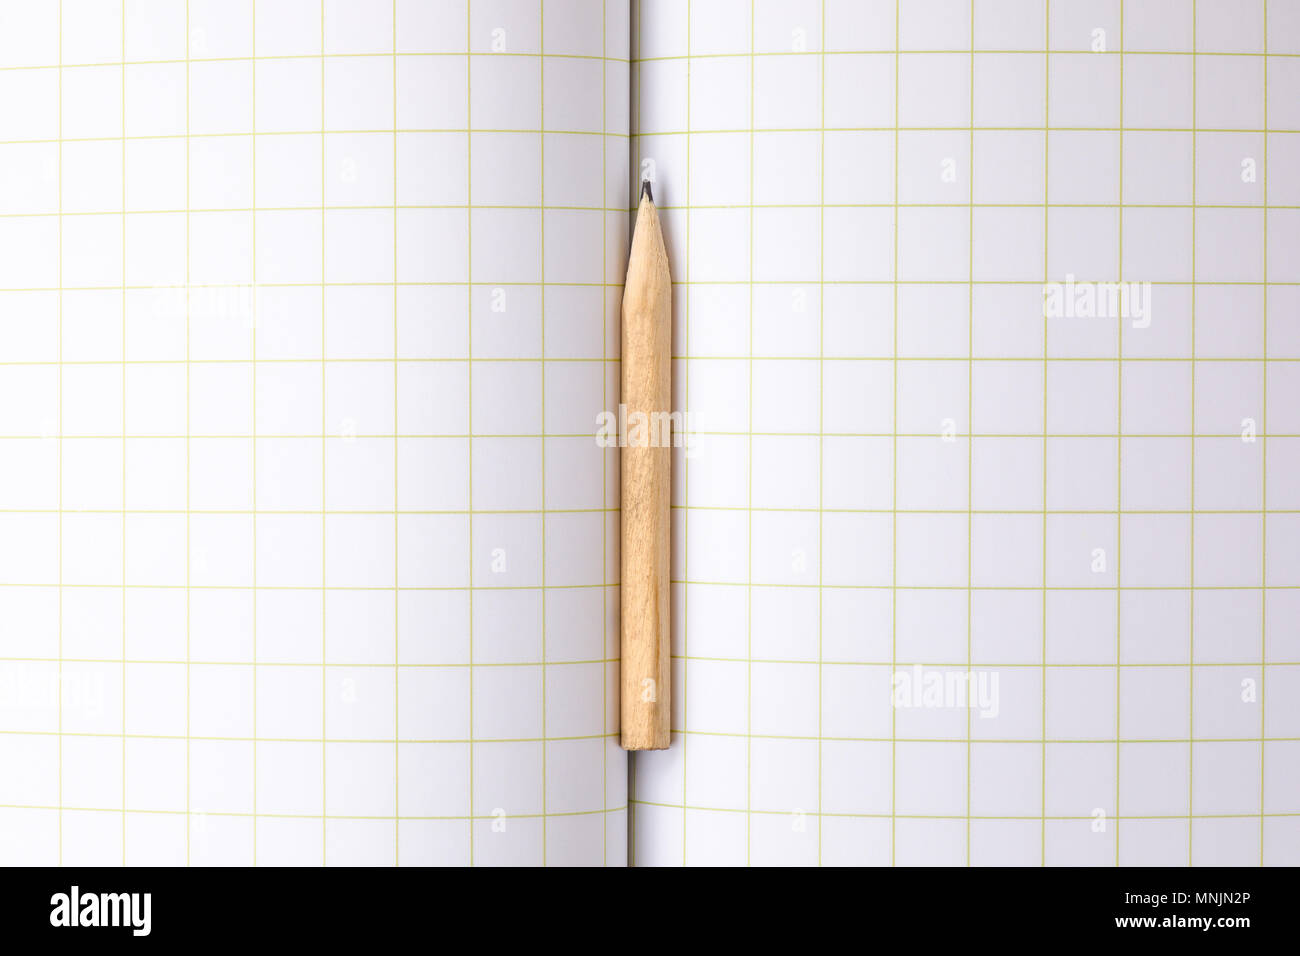 Short Pencil on a Squared Paper Copybook - Stock Image